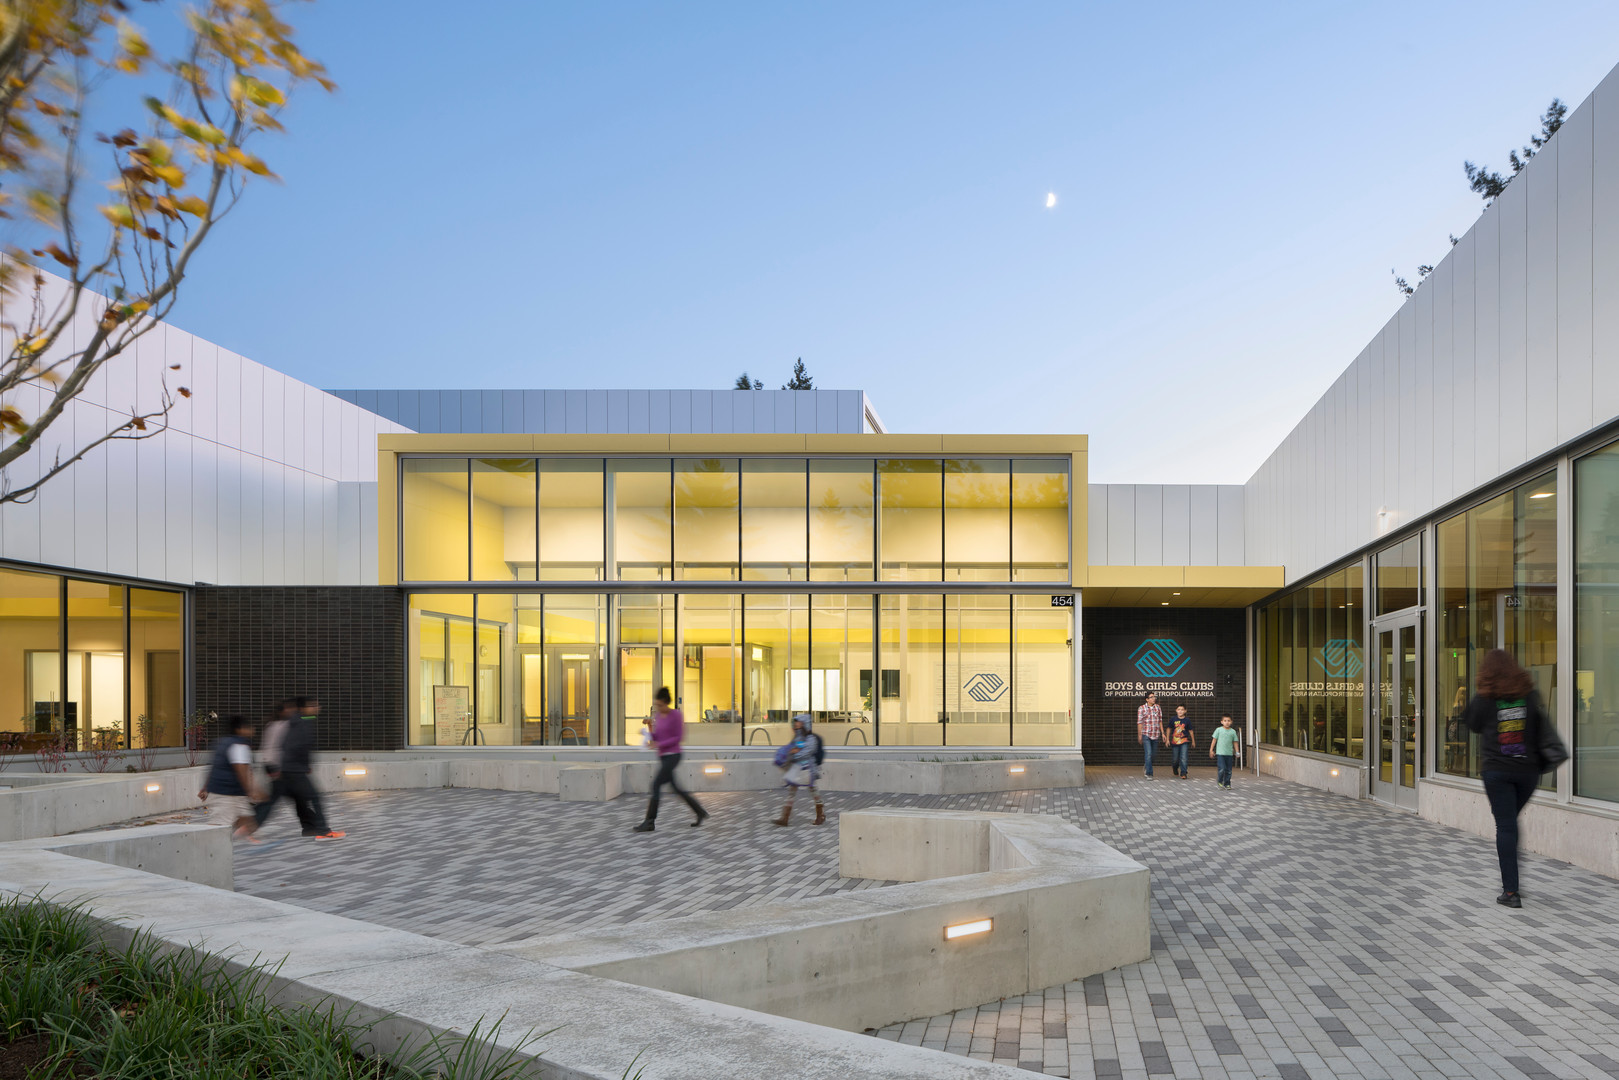 Design for Good: Rockwood Youth Campus